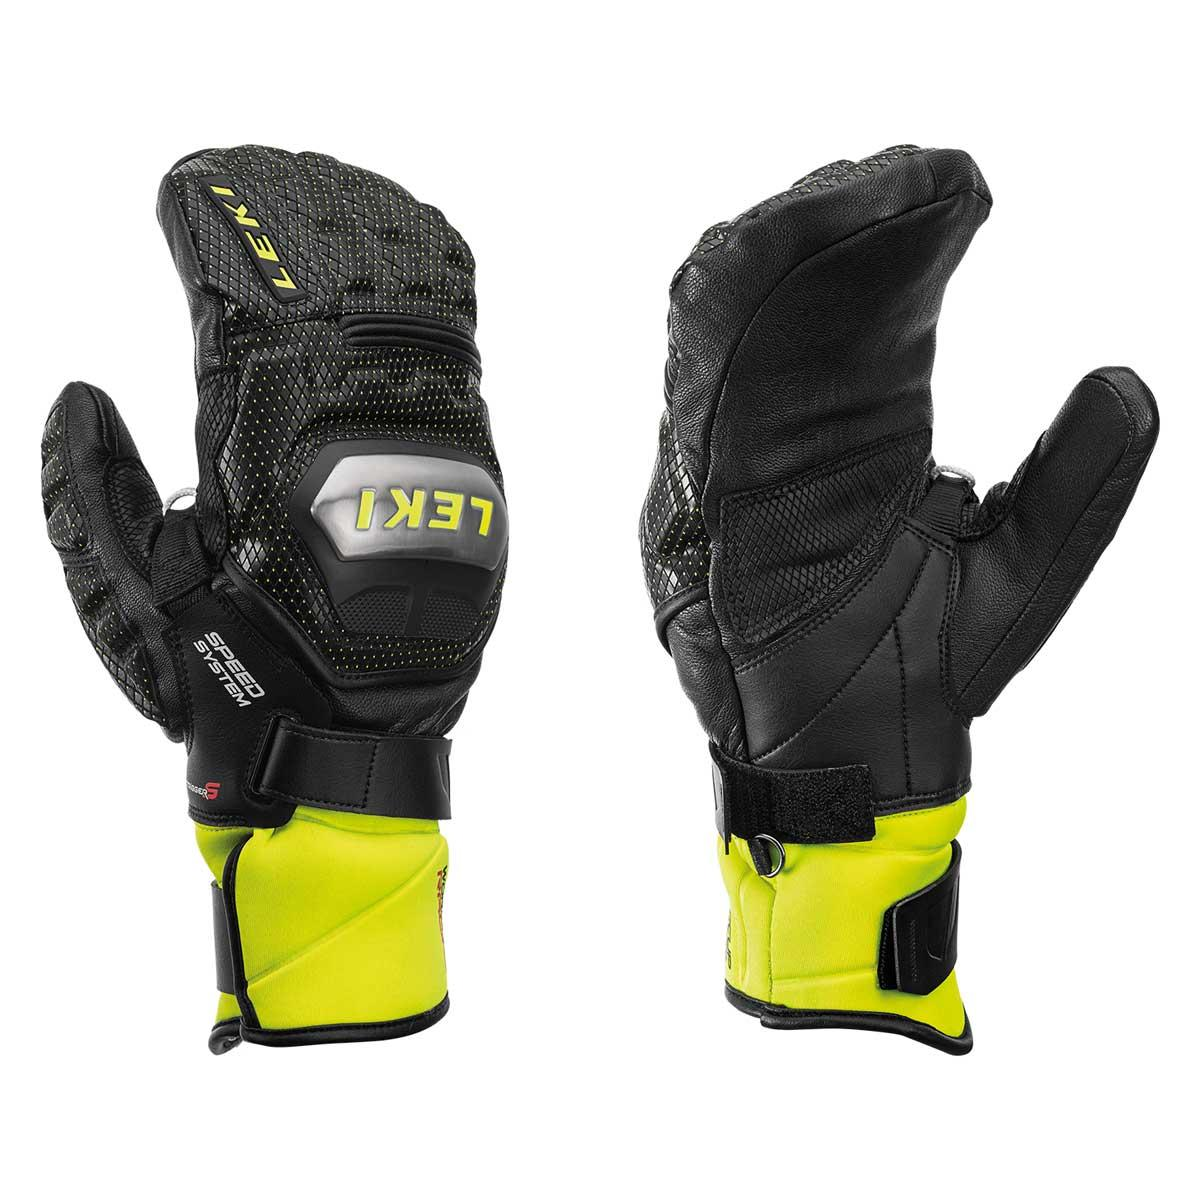 Leki Worldcup Race Ti Speed System Mitt in Black and Lemon